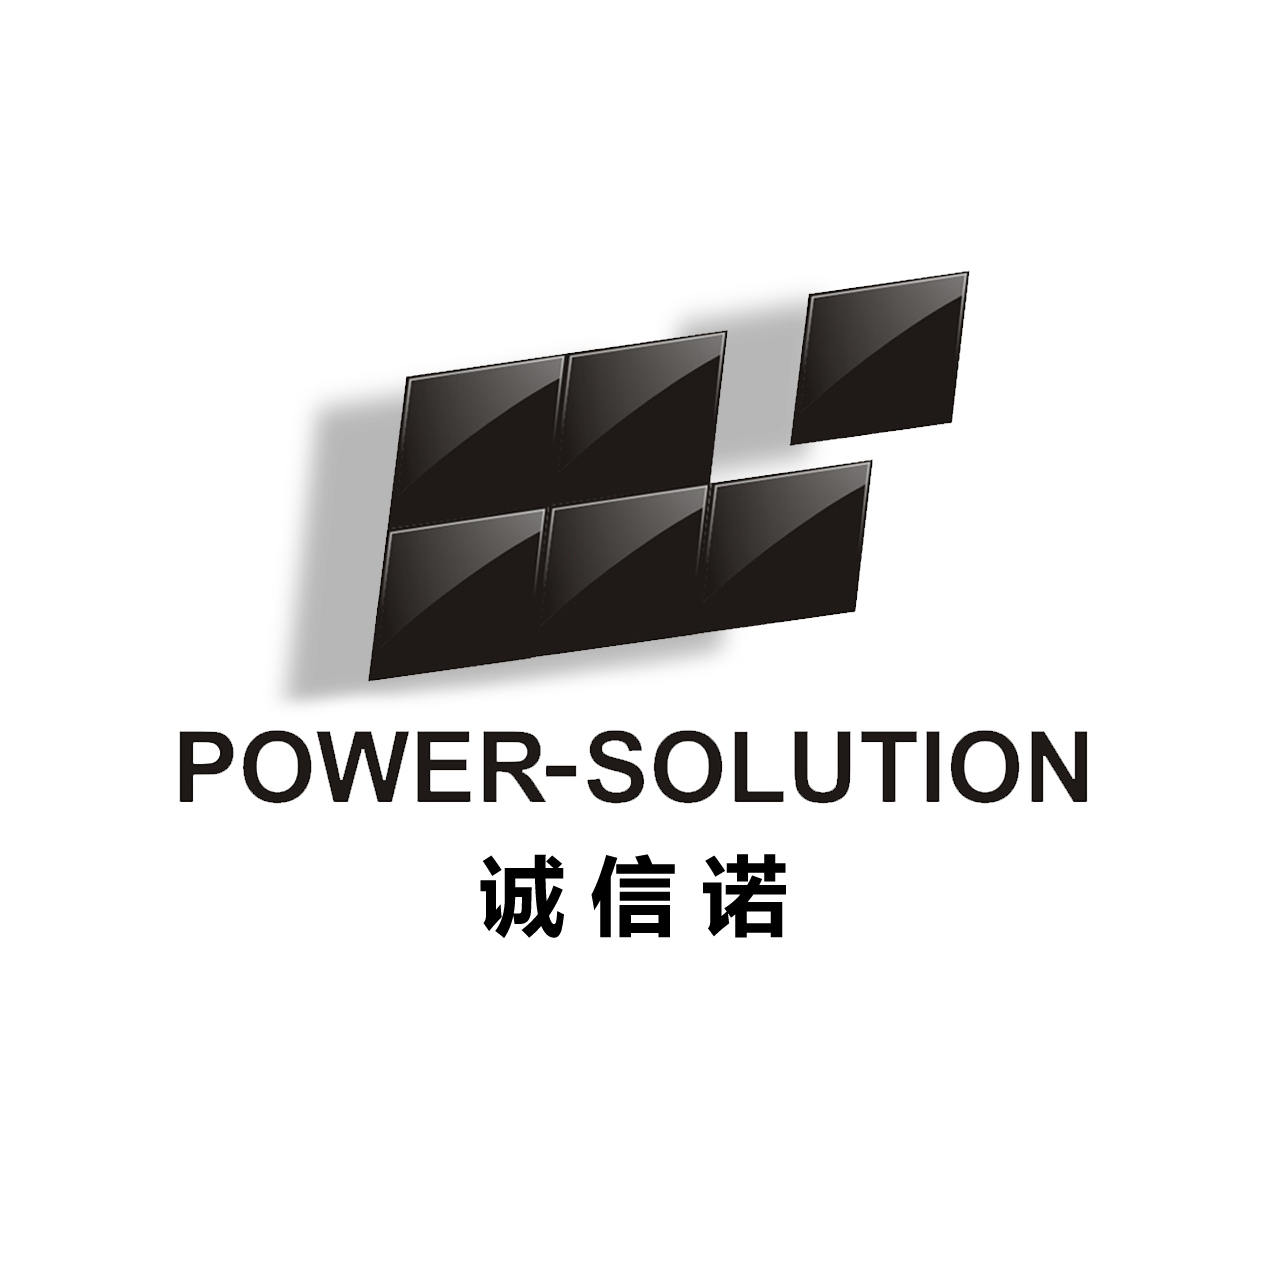 Shenzhen Power-Solution Ind Co., Limited